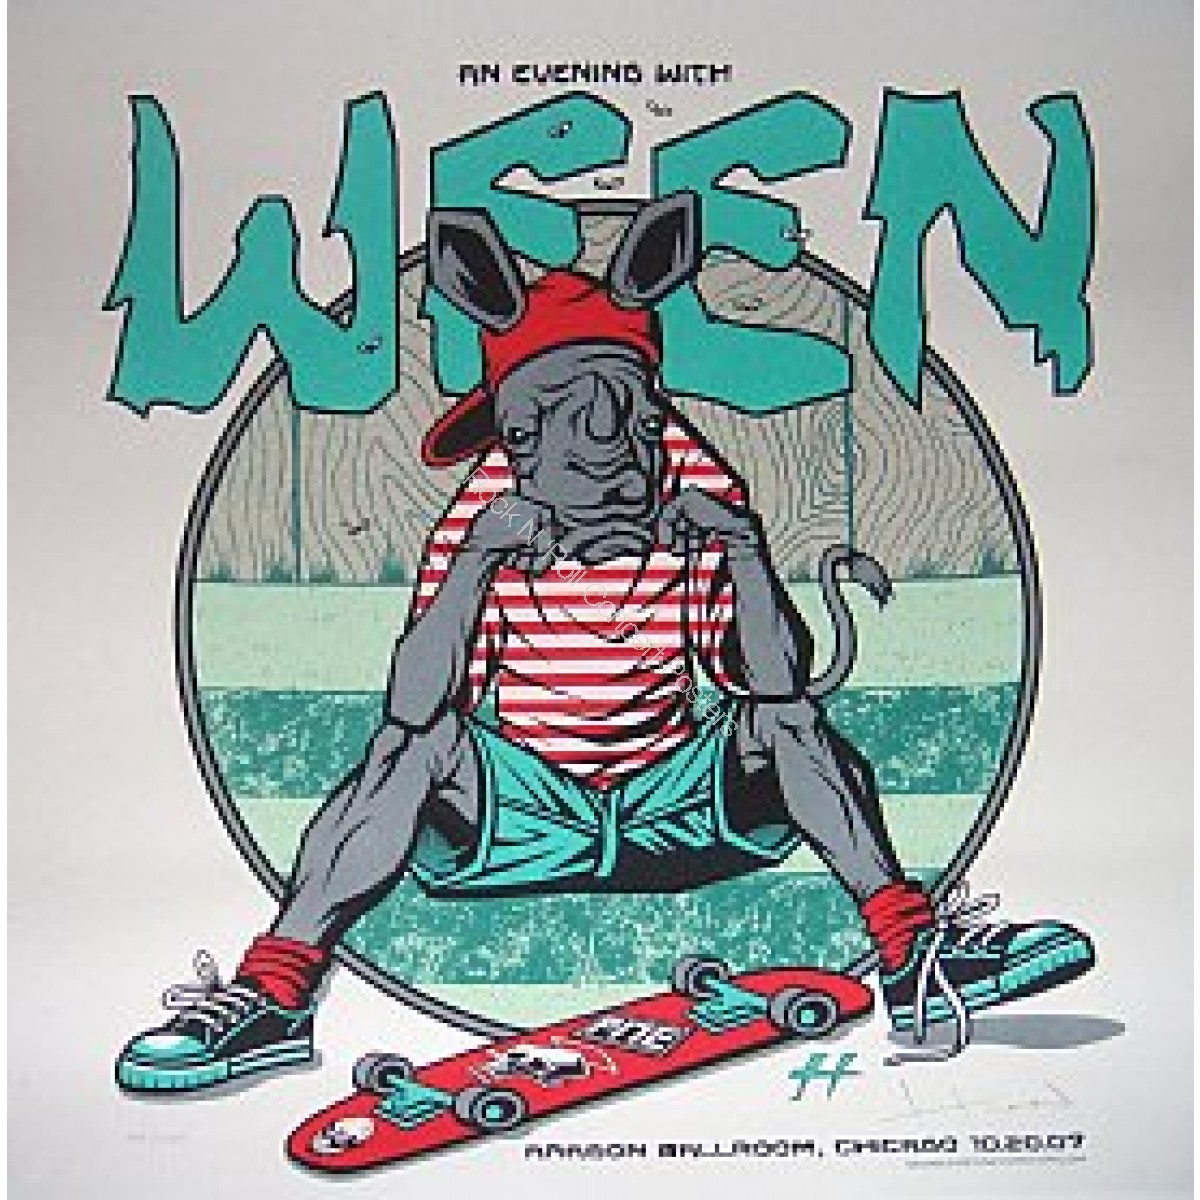 Ween @ The Aragon Ballroom Chicago 2007